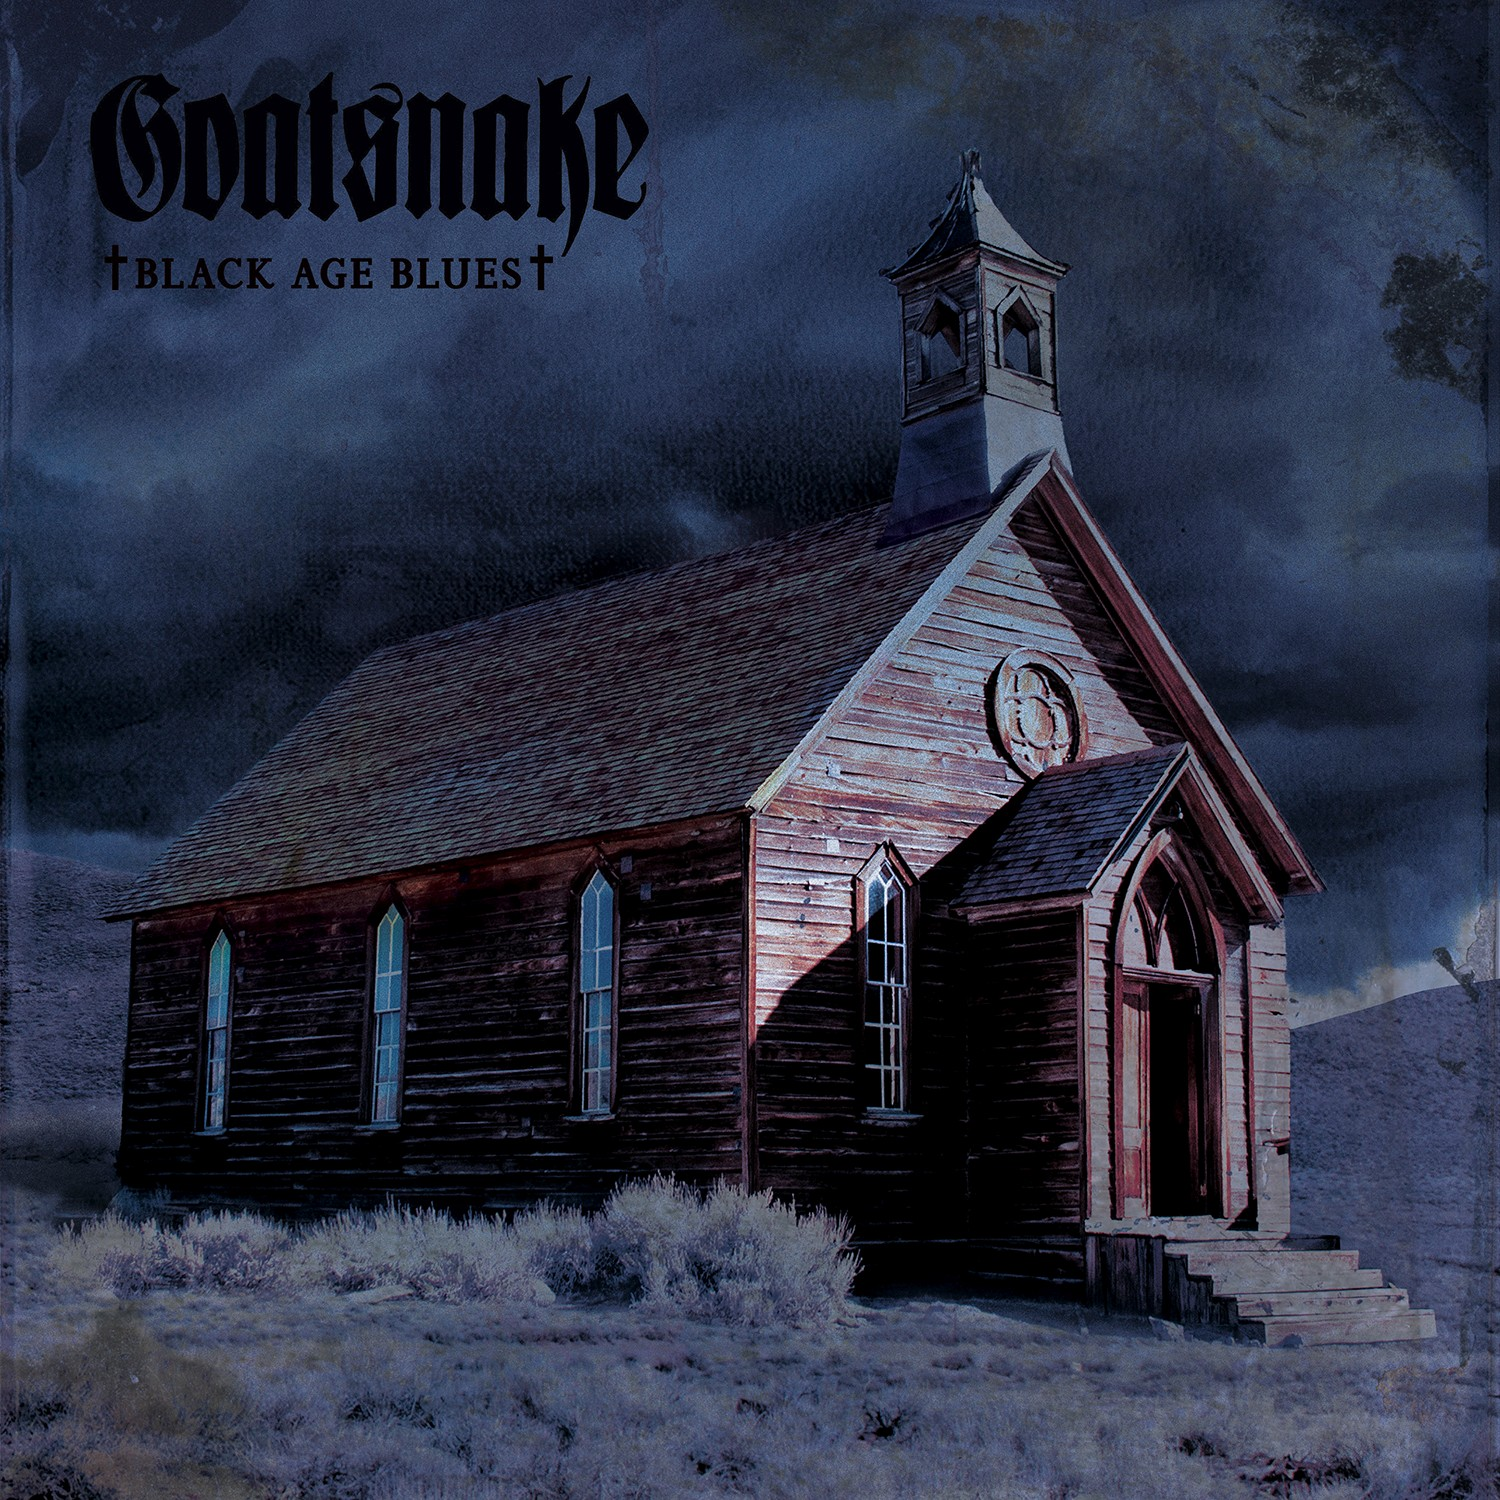 May 10 Album Review : Goatsnake - Black Age Blues (2015)